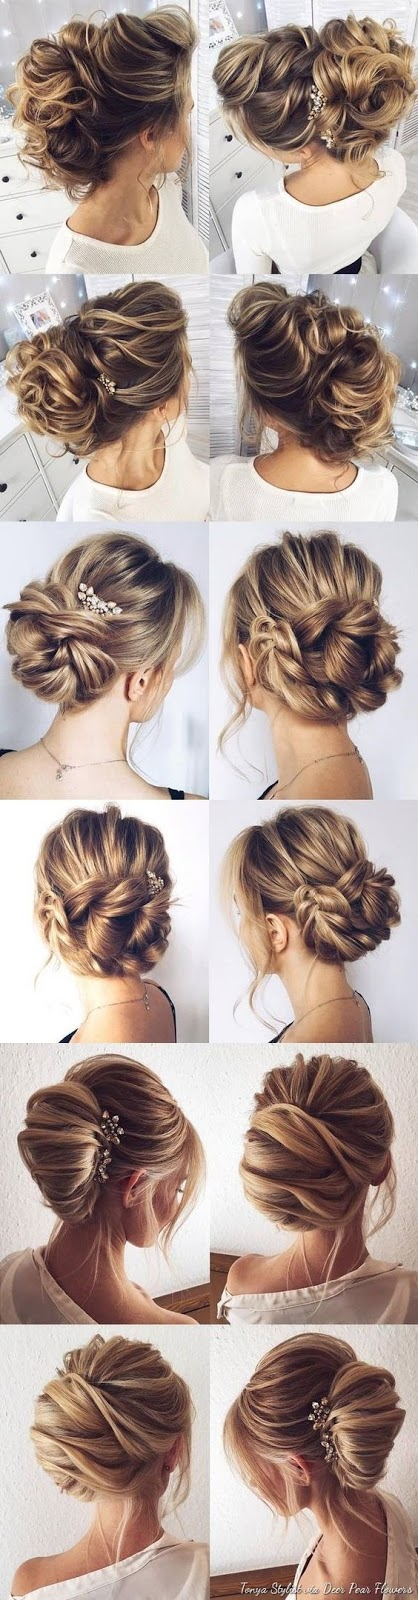 60 Wedding Hairstyles for Long Hair